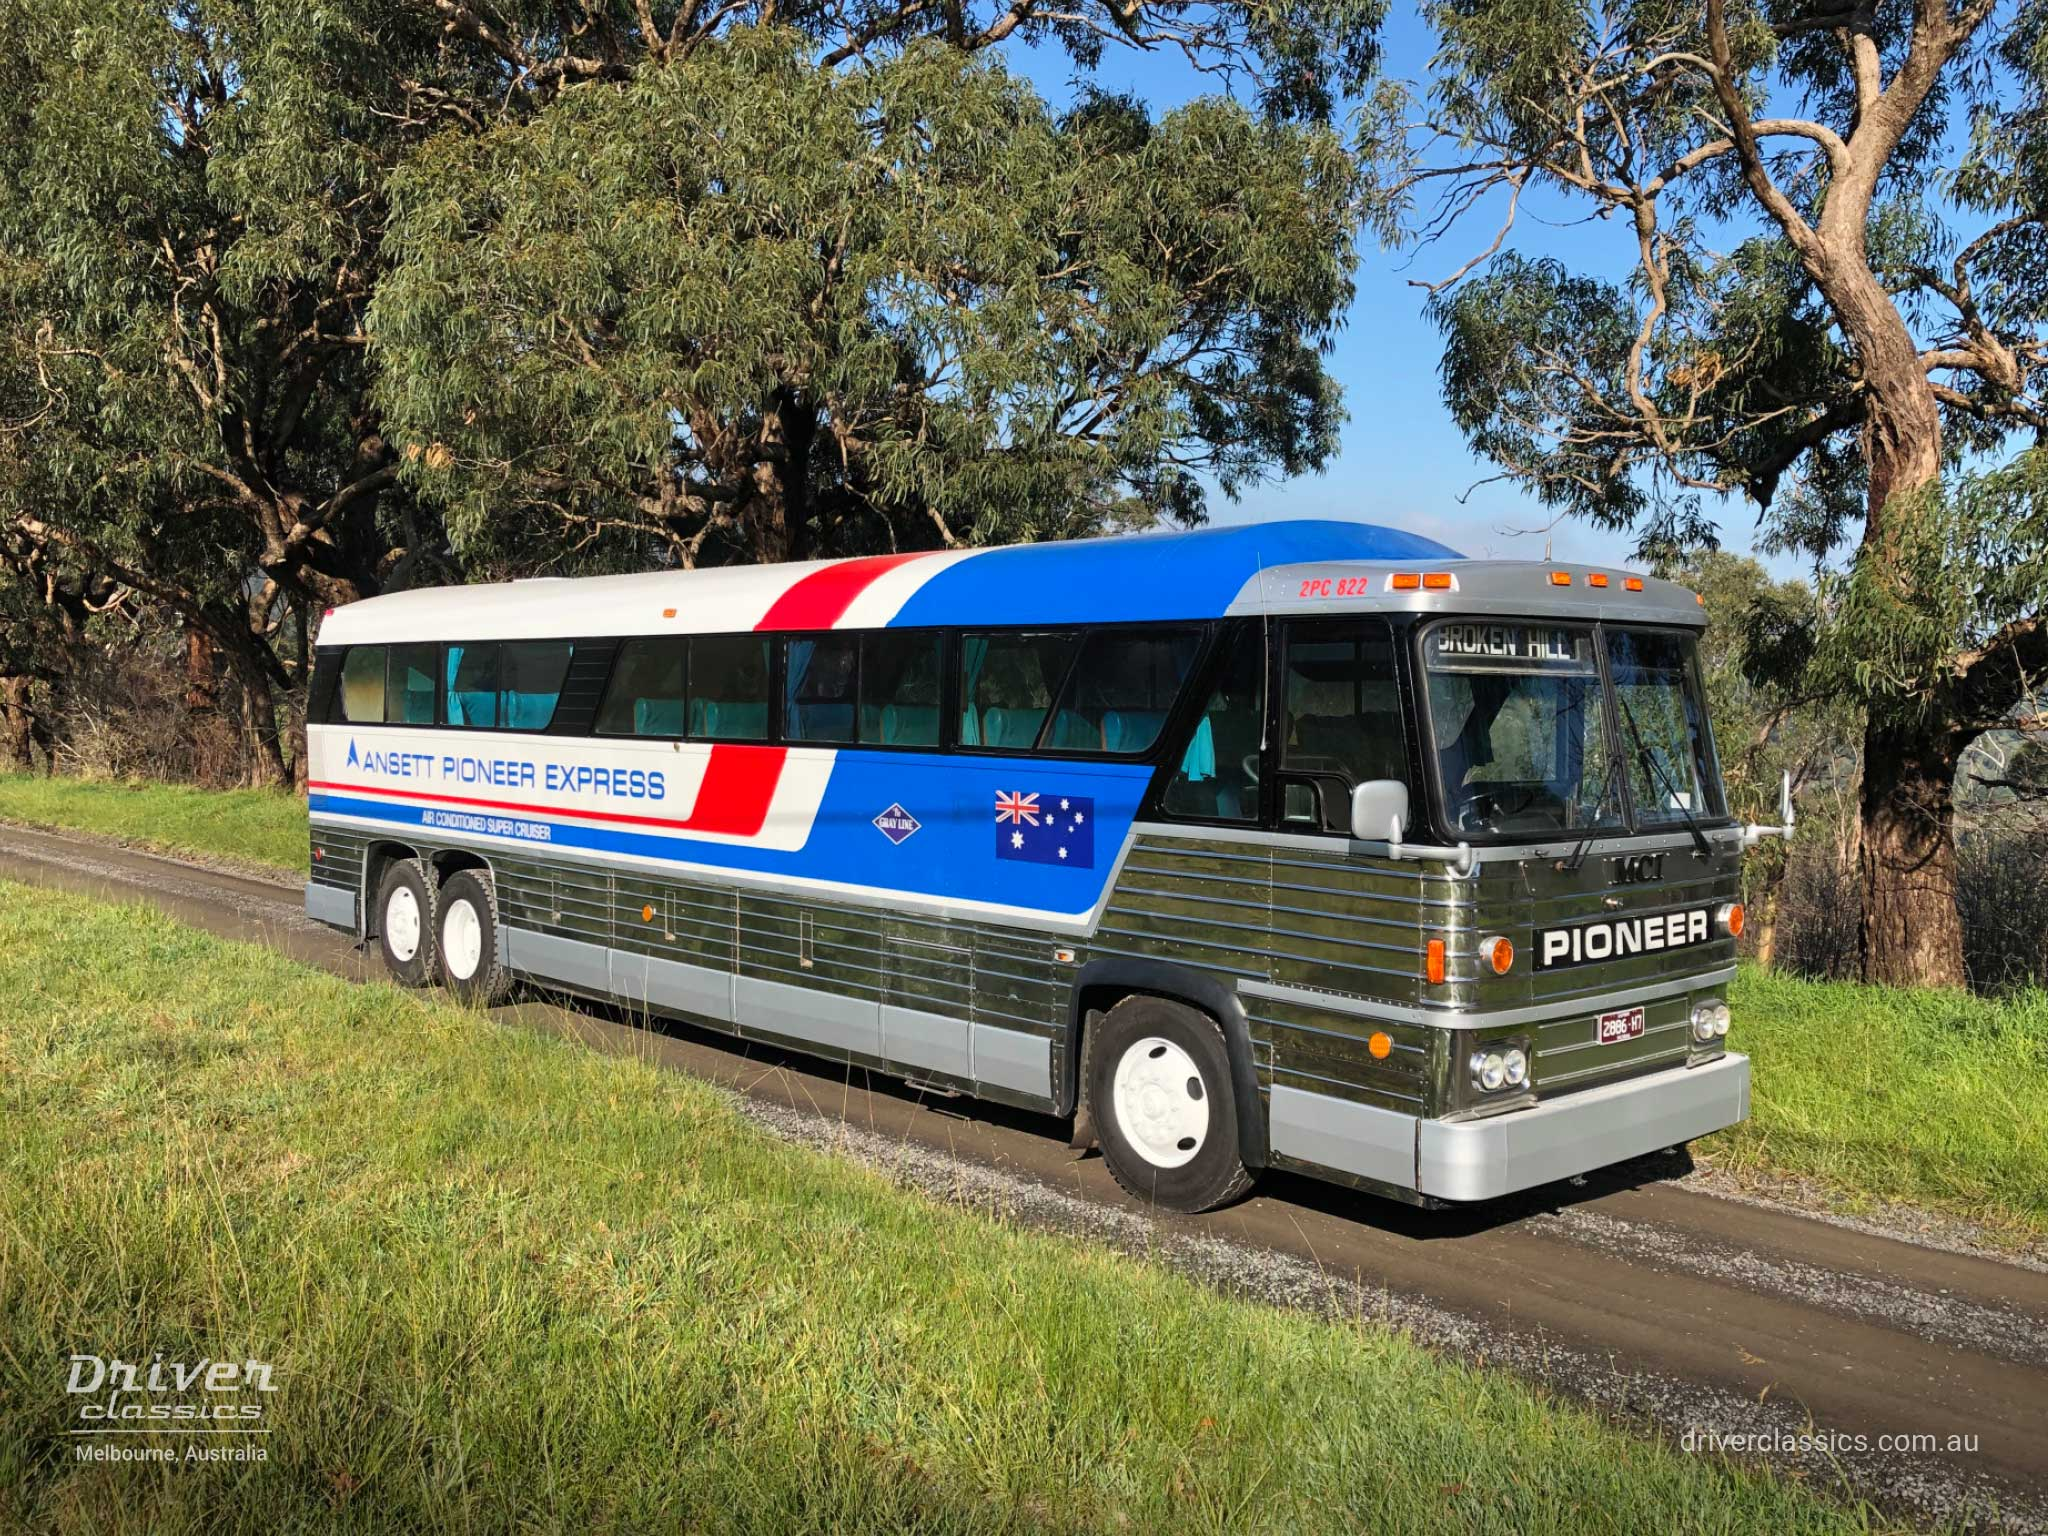 MCI MC8 bus (1976 version), road side and front, Lysterfield VIC. Photo taken Jul 2020